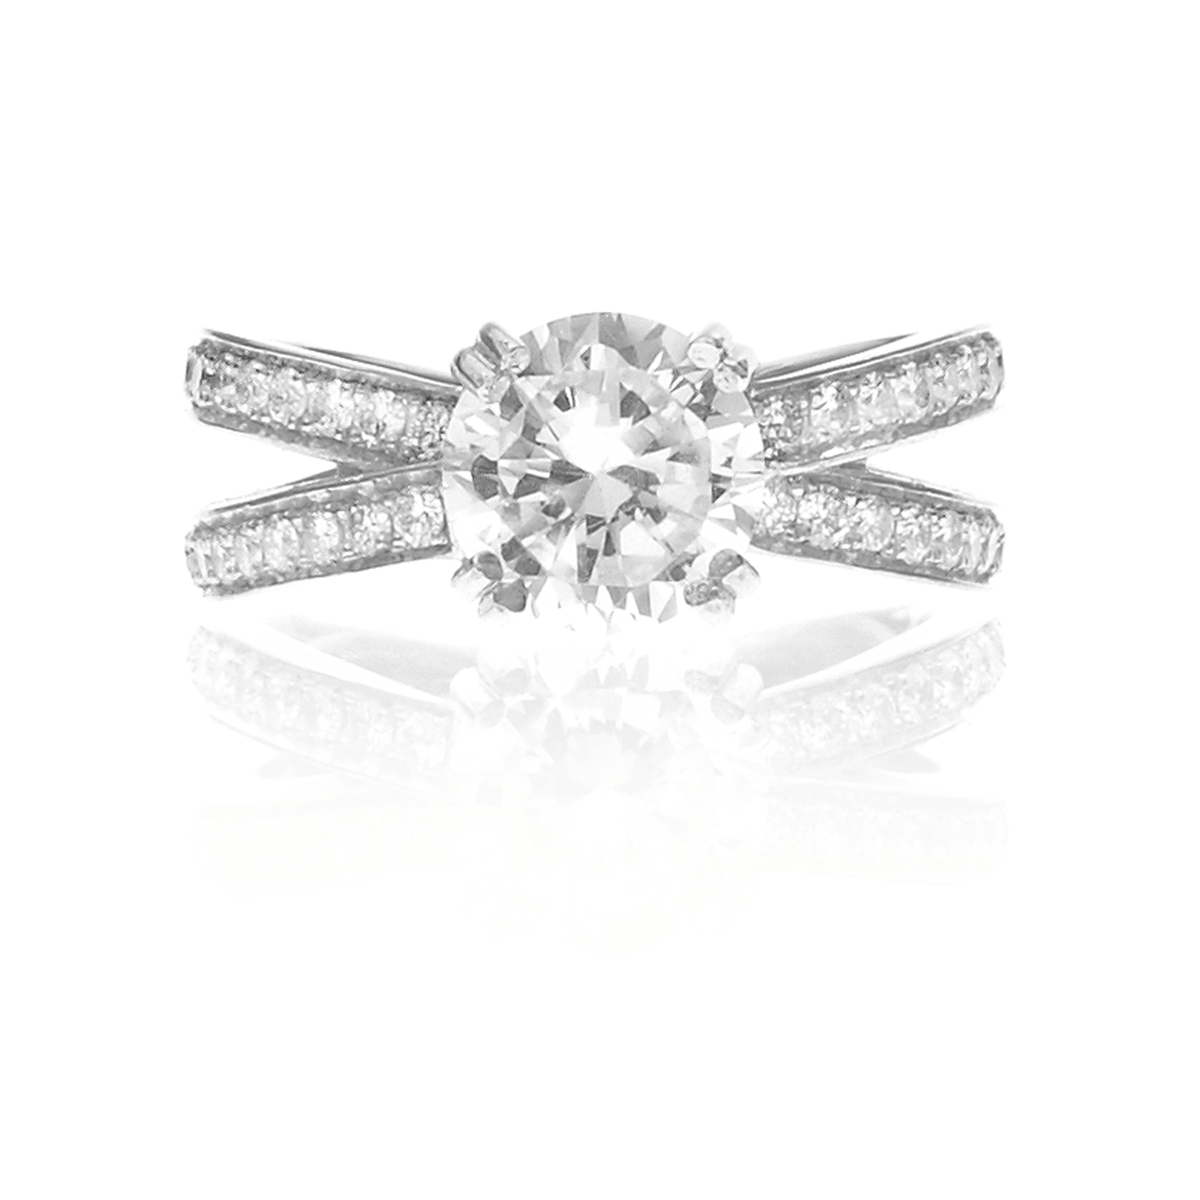 CROSS ENGAGEMENT RING - Chris Aire Fine Jewelry & Timepieces